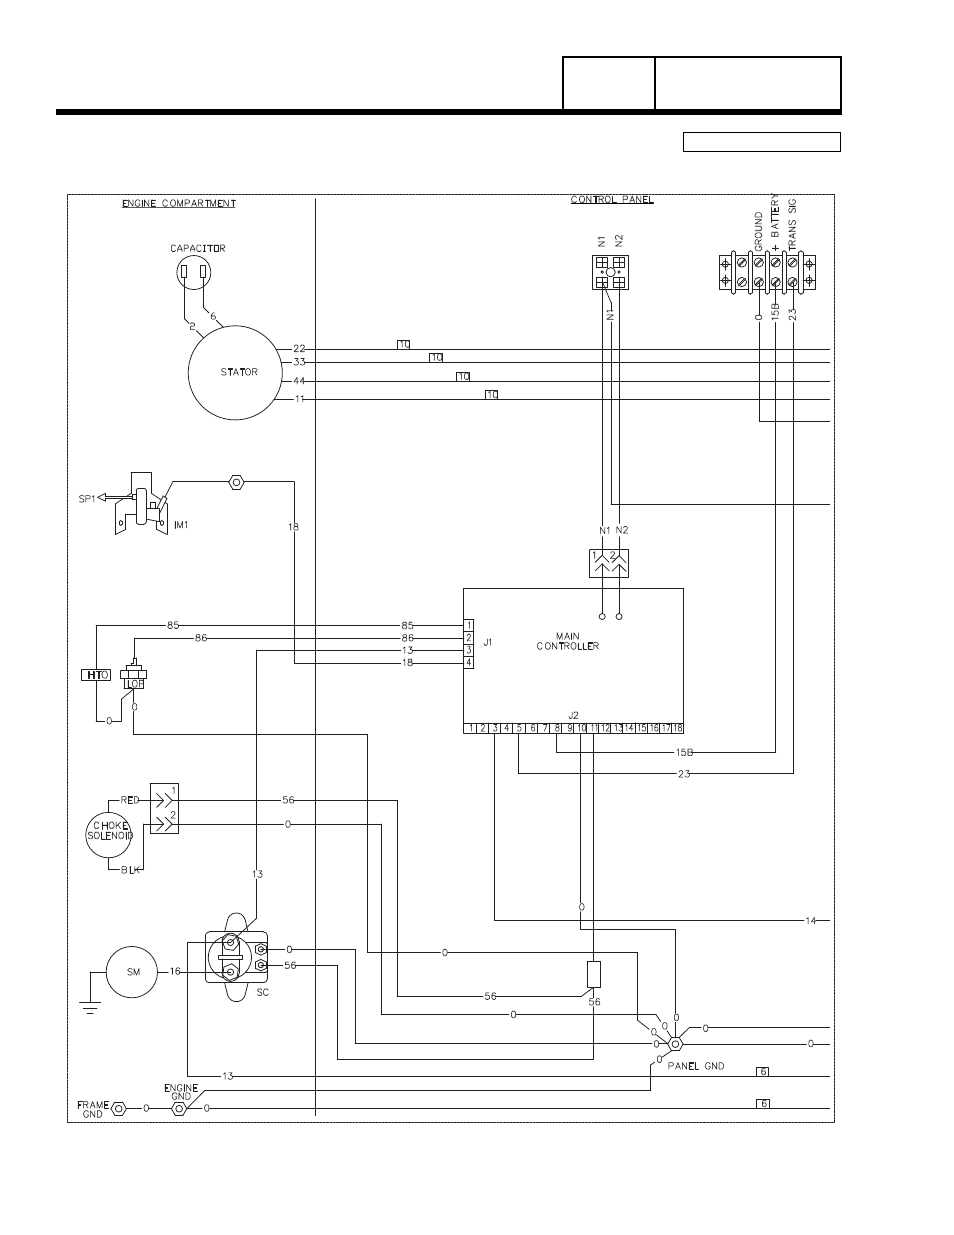 Onan Engine Cckb Ms 4006j Wiring Diagramengine 40cck Diagram 15 Kw Generator Remote Start Generac Power Systems 8 Lp Page166resize